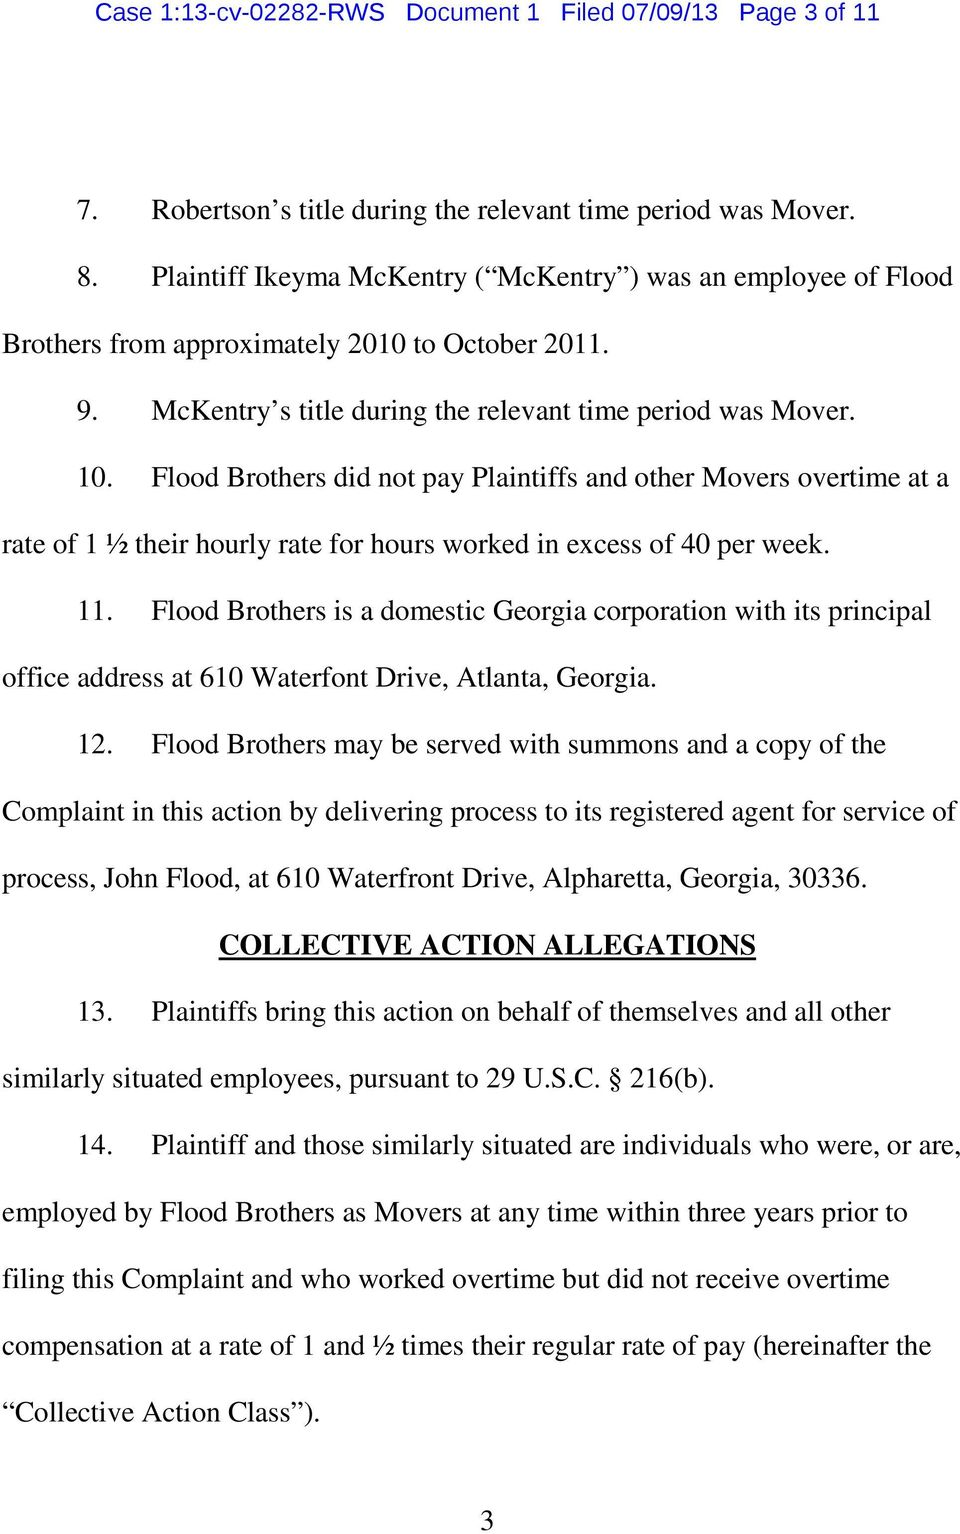 Flood Brothers did not pay Plaintiffs and other Movers overtime at a rate of 1 ½ their hourly rate for hours worked in excess of 40 per week. 11.